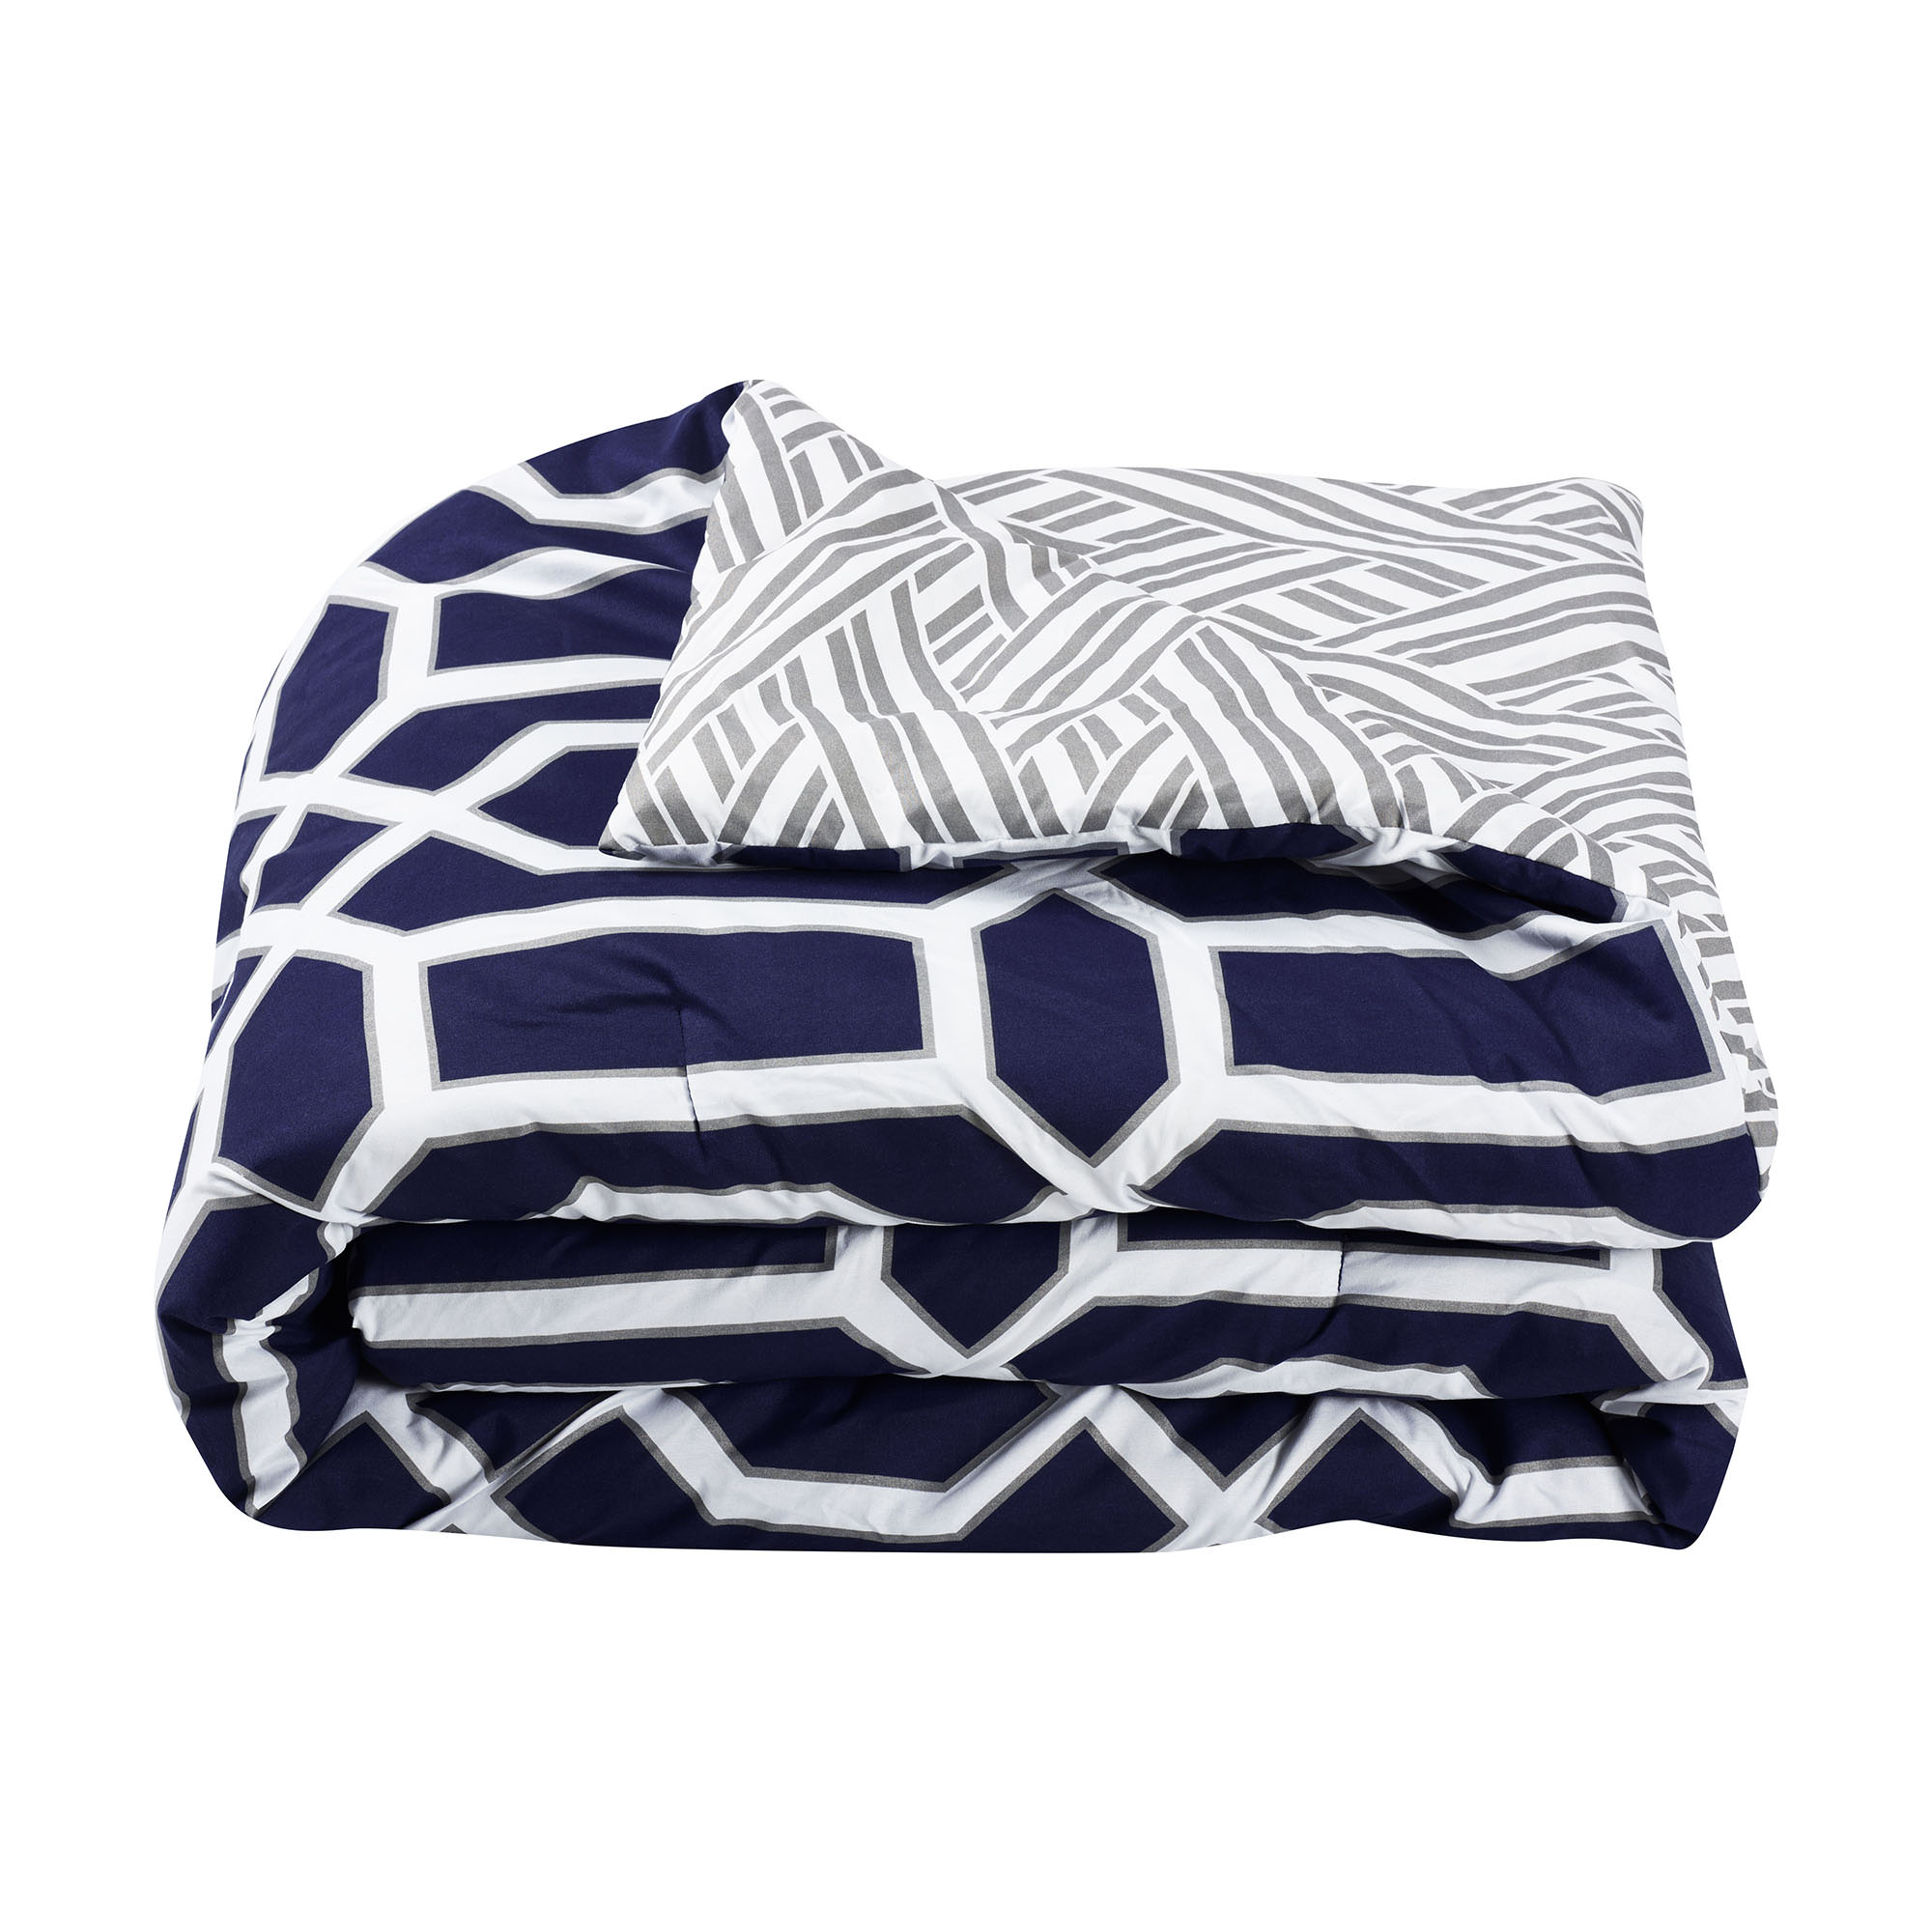 Boho Living Runa 5 Piece Reversible Comforter Set Full Queen Navy Grey White Comforter Sets